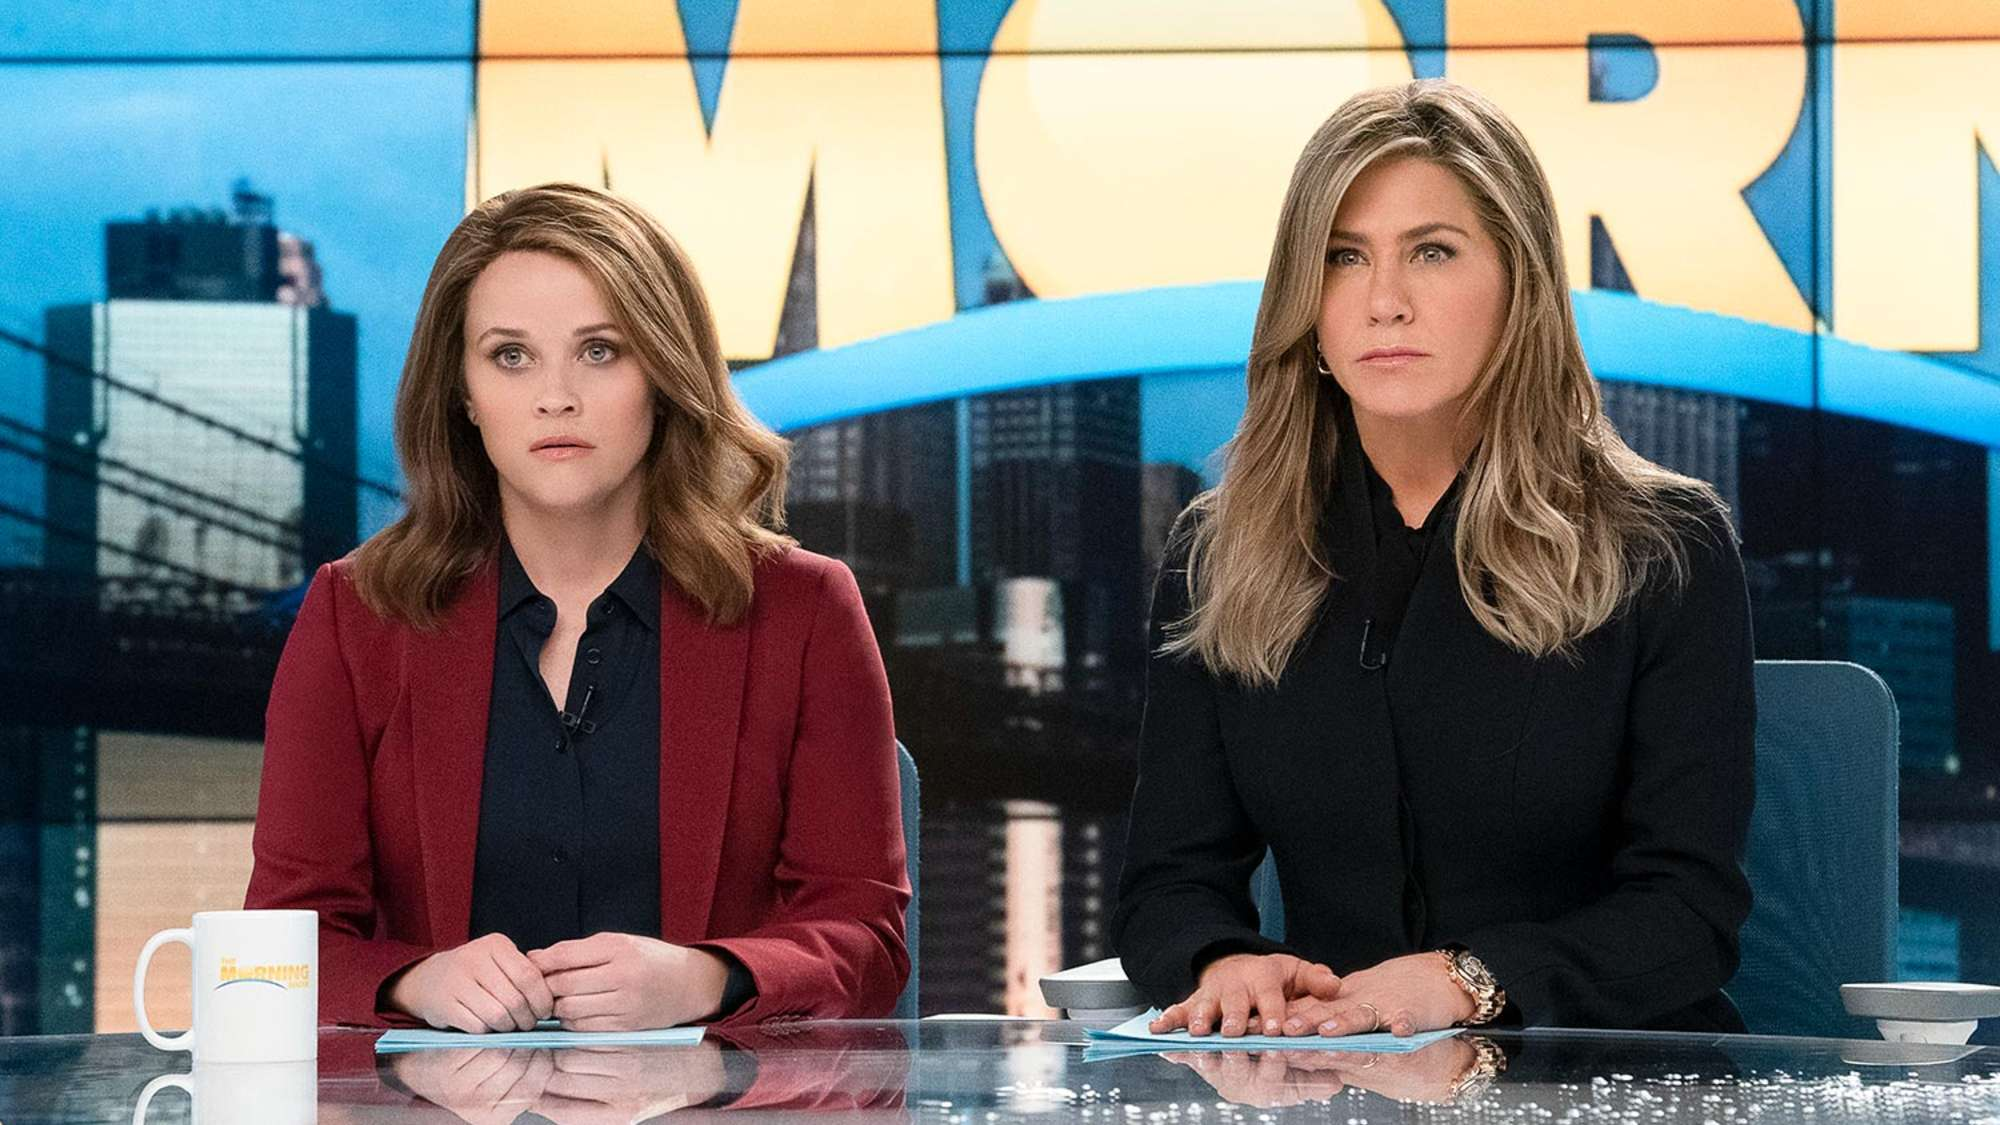 The Morning Show Season 2: Release Date and Everything You Need to Know